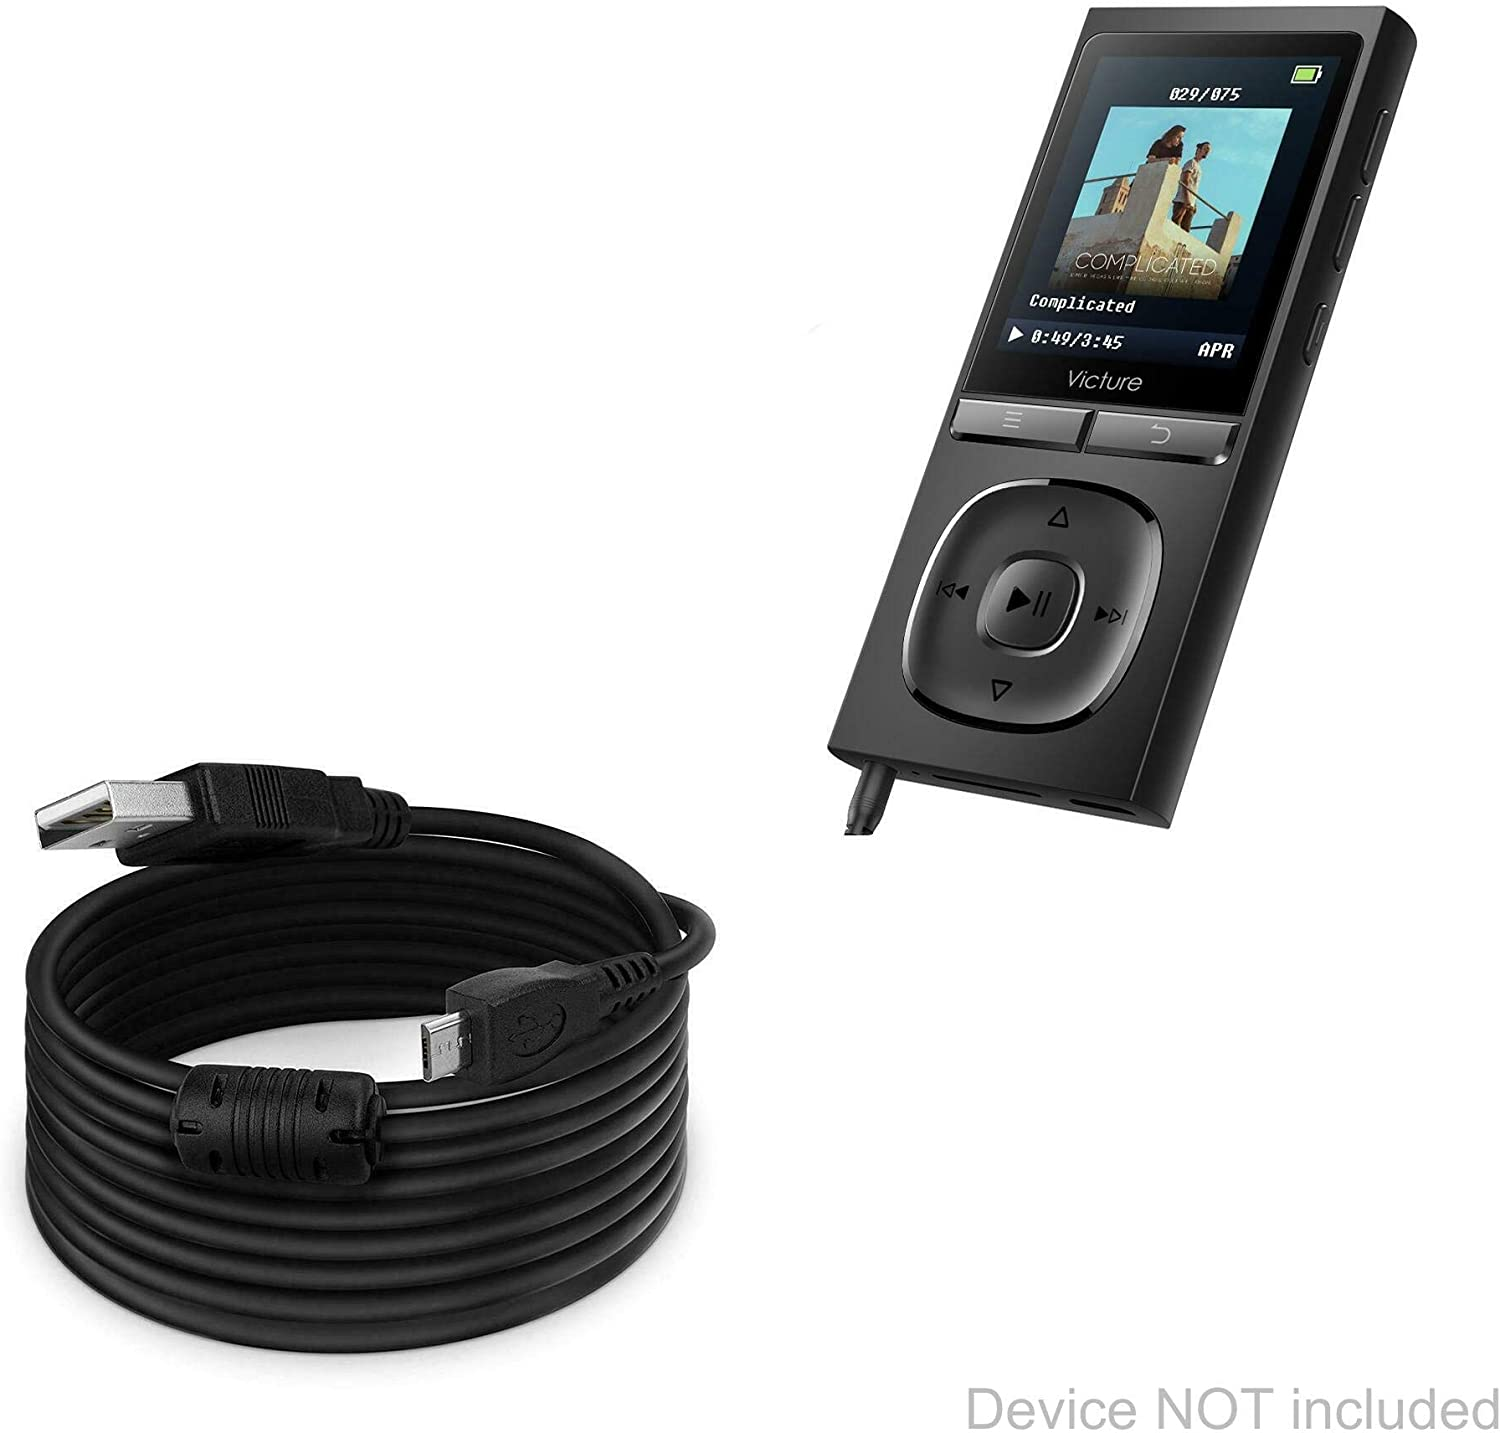 DirectSync Cable Victure M5 Cable BoxWave 15 ft Extra Long Charge and Sync Cable for Victure M5 Black